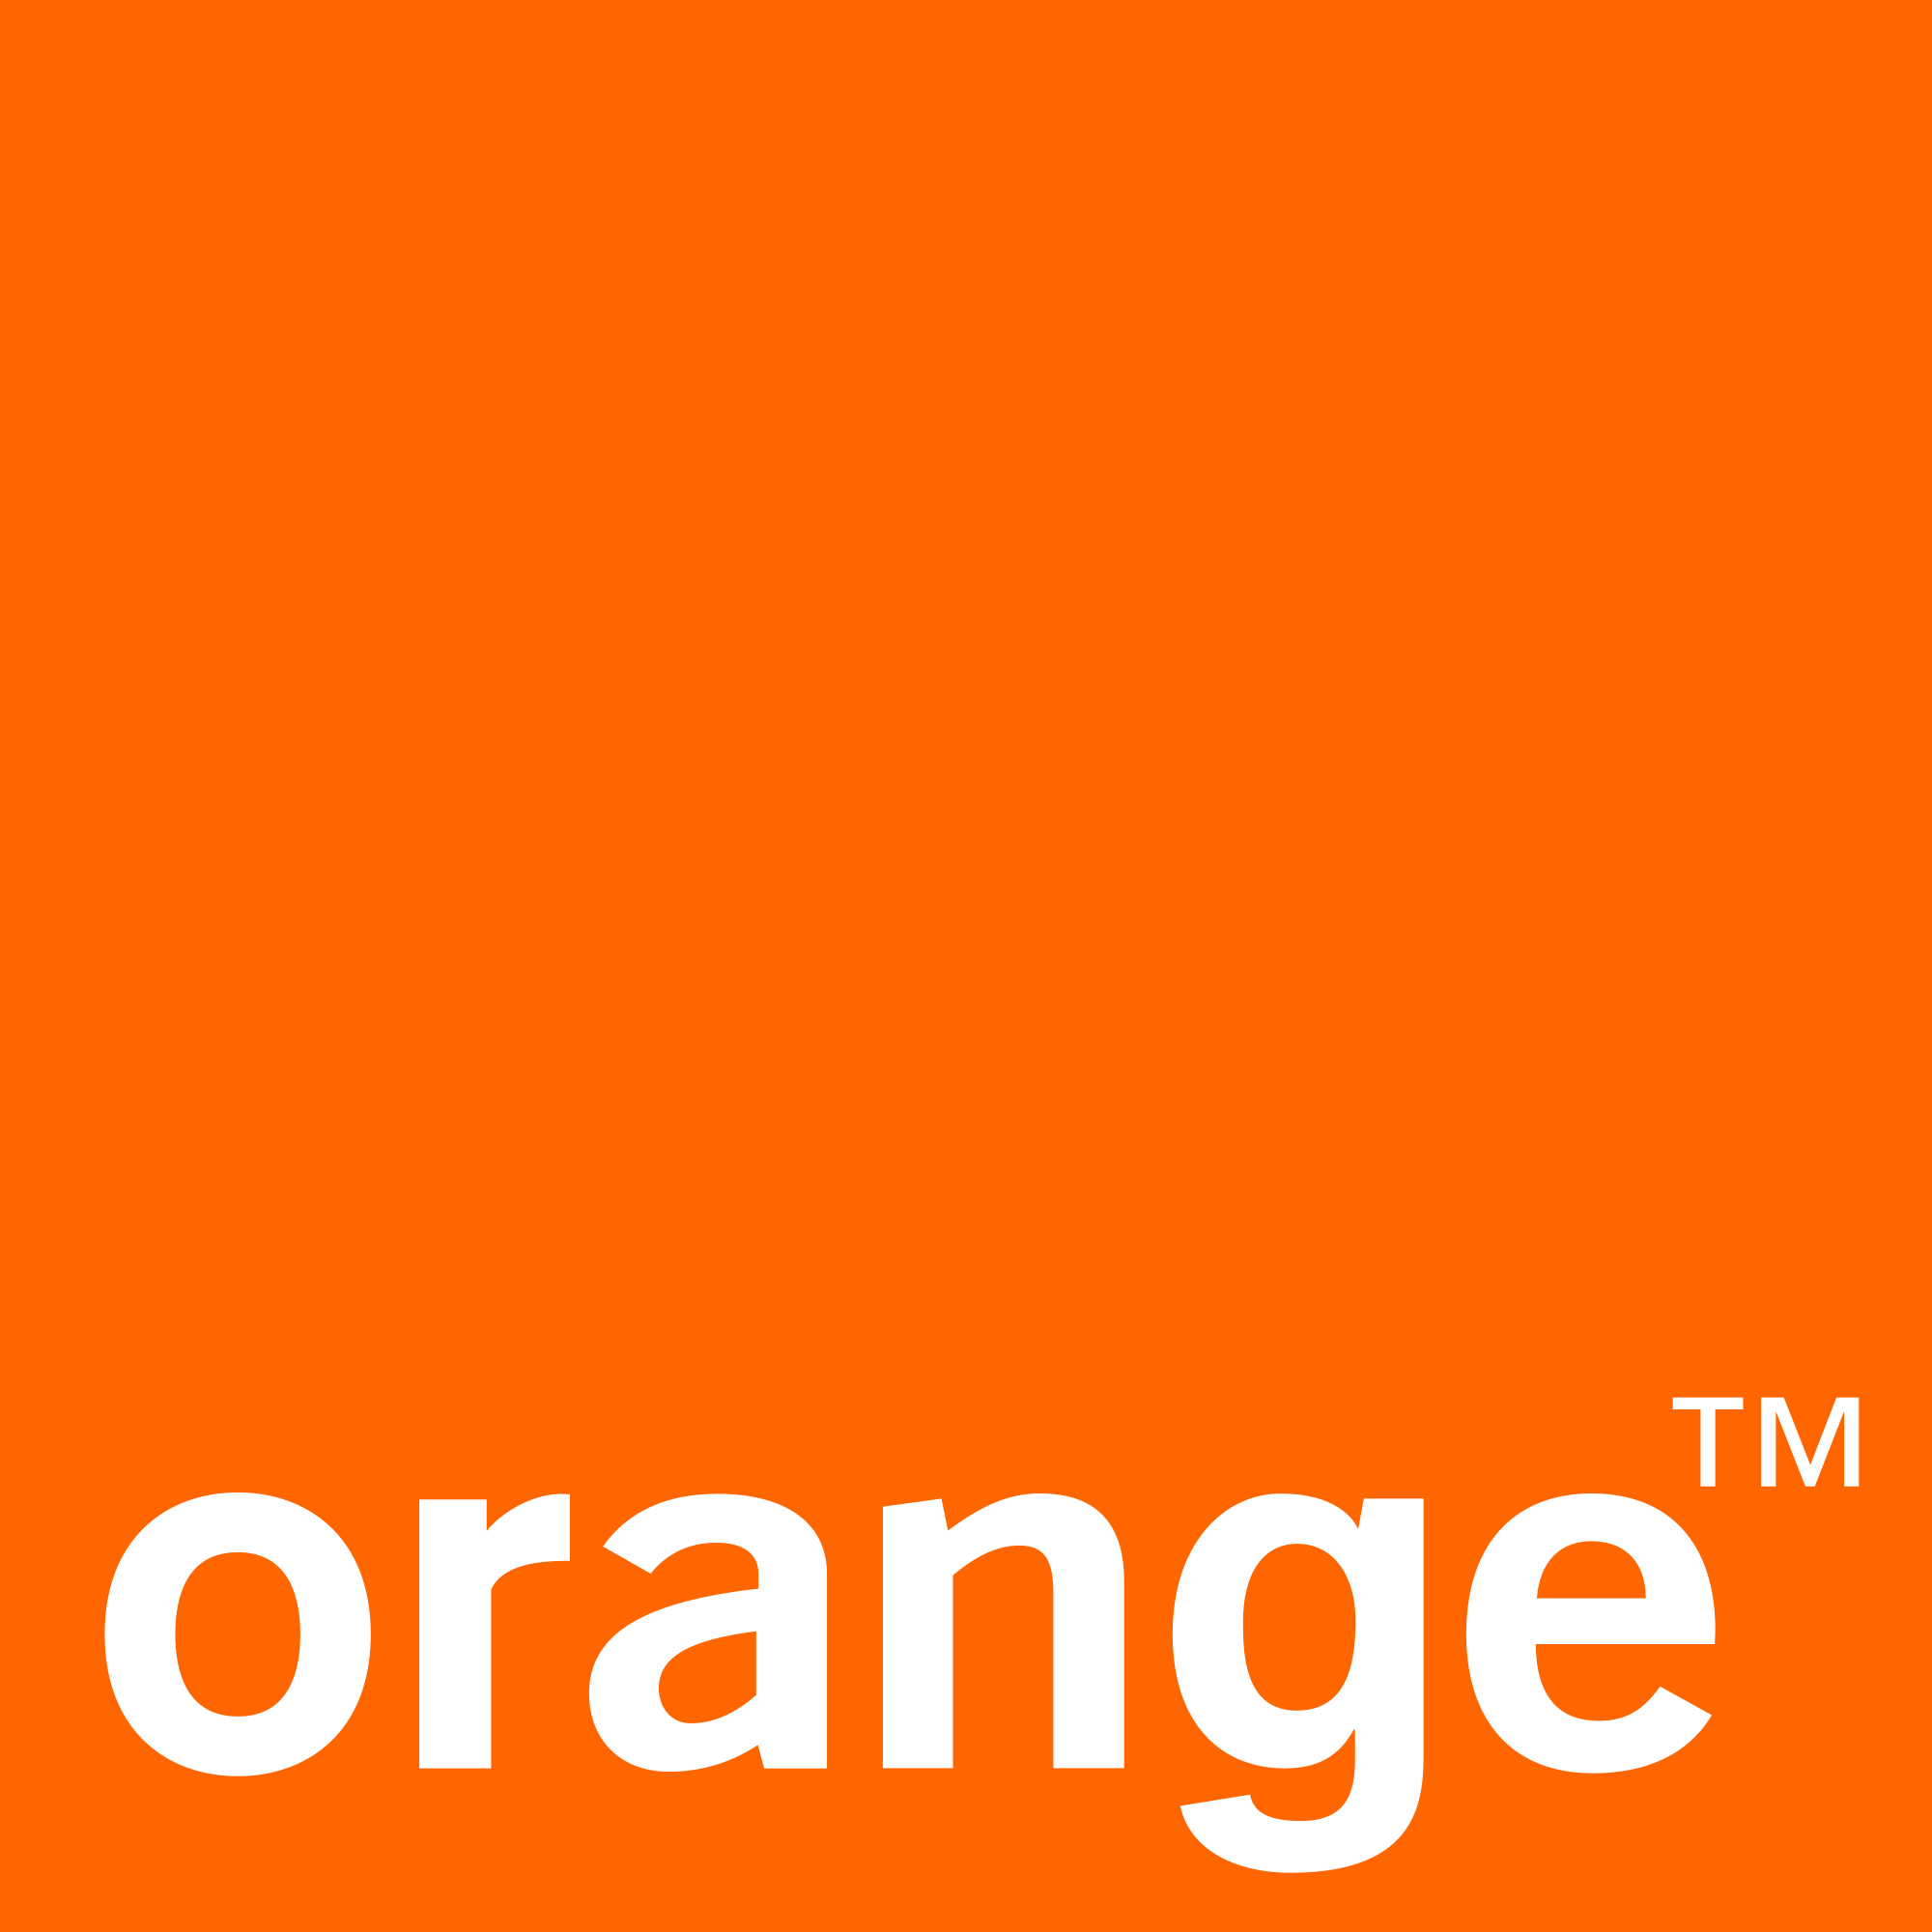 Orange svg #19, Download drawings